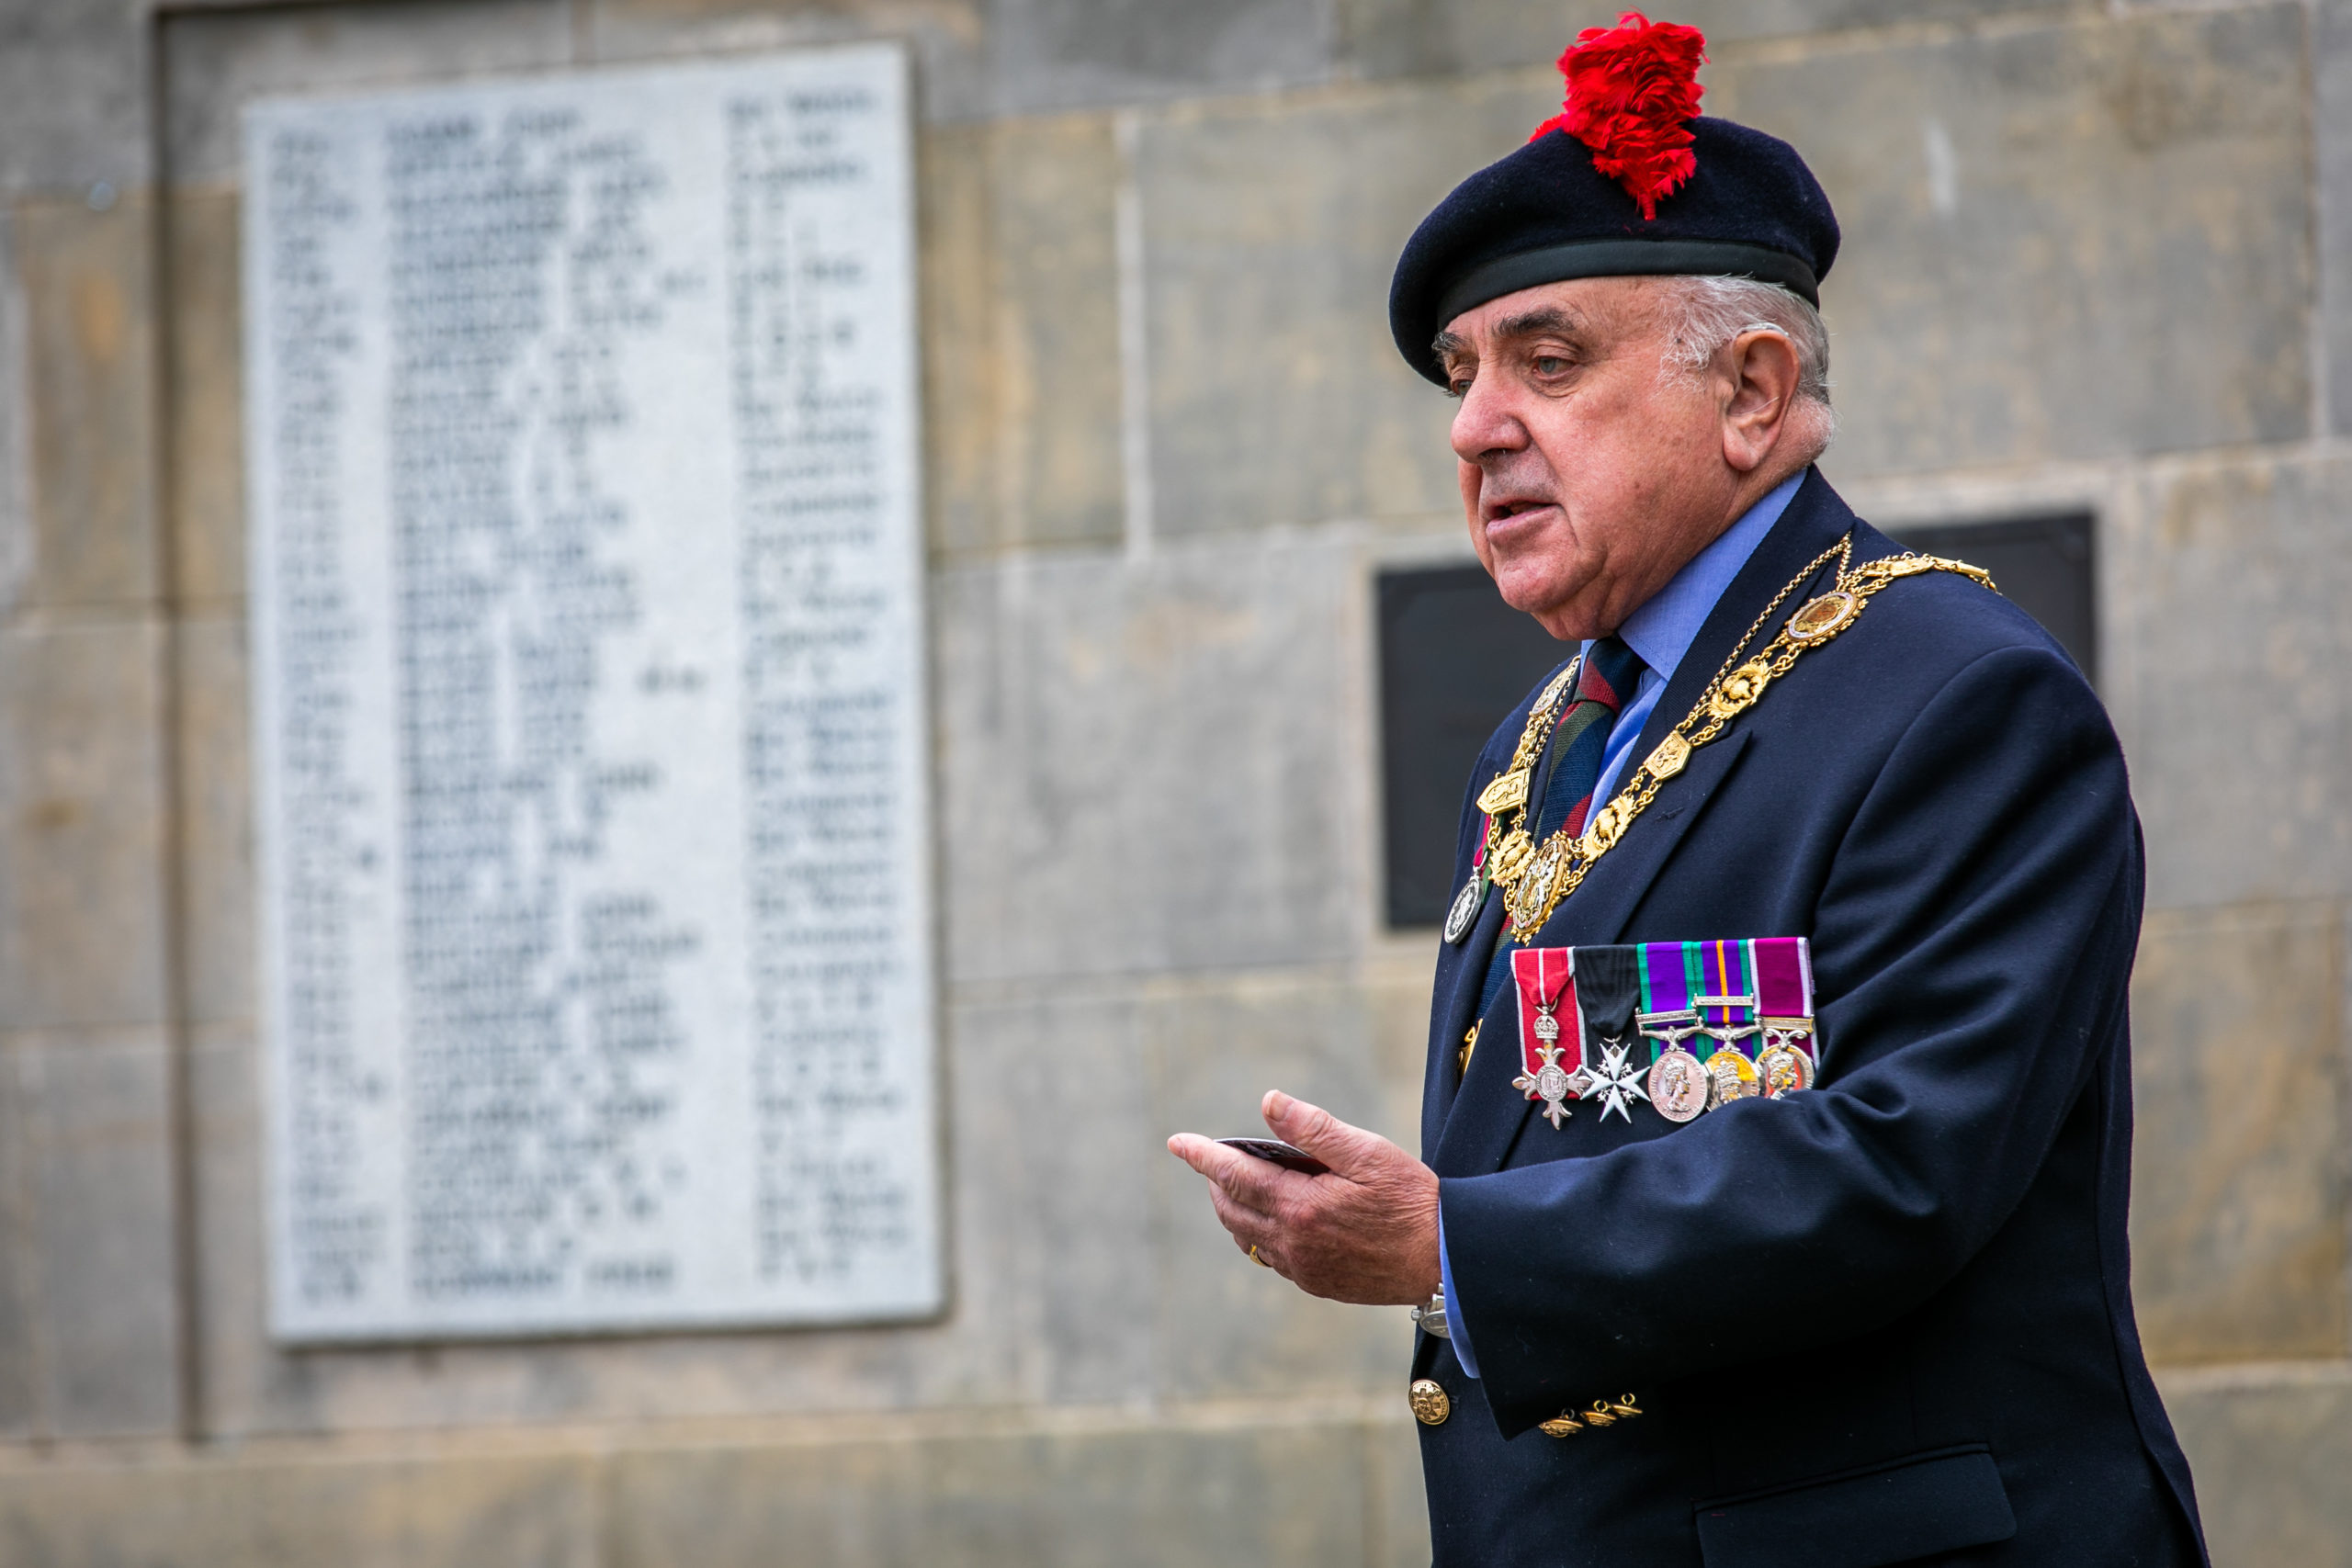 Lord Provost of Angus Ronnie Proctor at VJ commemoration ceremony in Carnoustie.